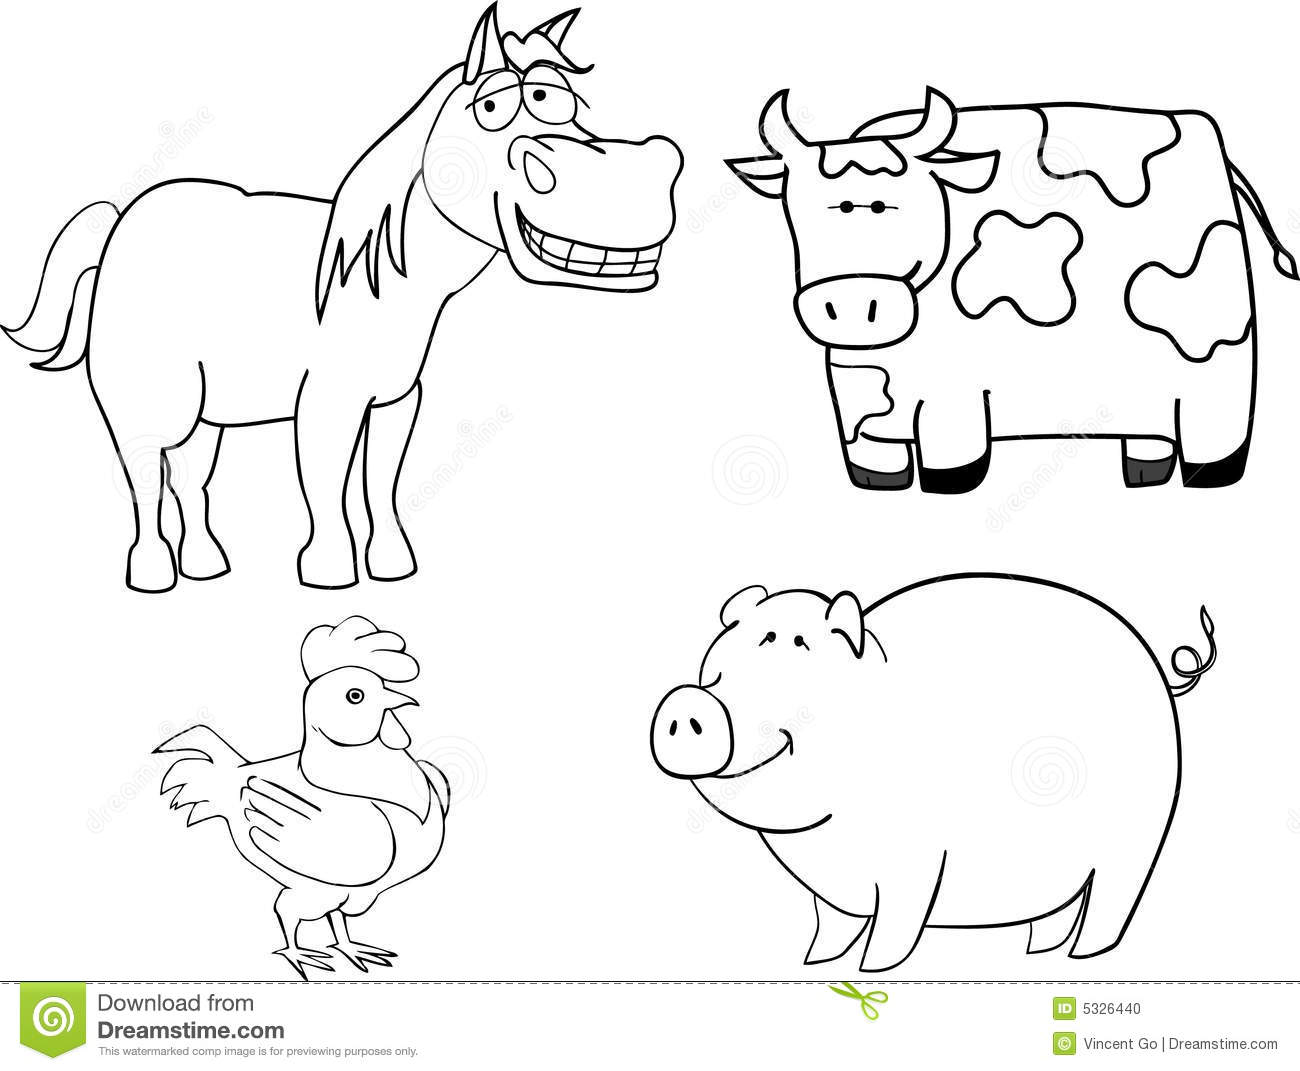 Stock Photo Cleaning Icons Simple Set Related Vector Your Design Image39977620 besides Royalty Free Stock Photo House Sketch Image22669075 moreover Stock Photo Farm Animals Image5326440 likewise Kerala Home Design And Floor Plans Inspirations 3 Bhk Simple Map In 1500 Sq Feet 2017 together with First Floor Master Bedroom House Plans. on simple house plans images